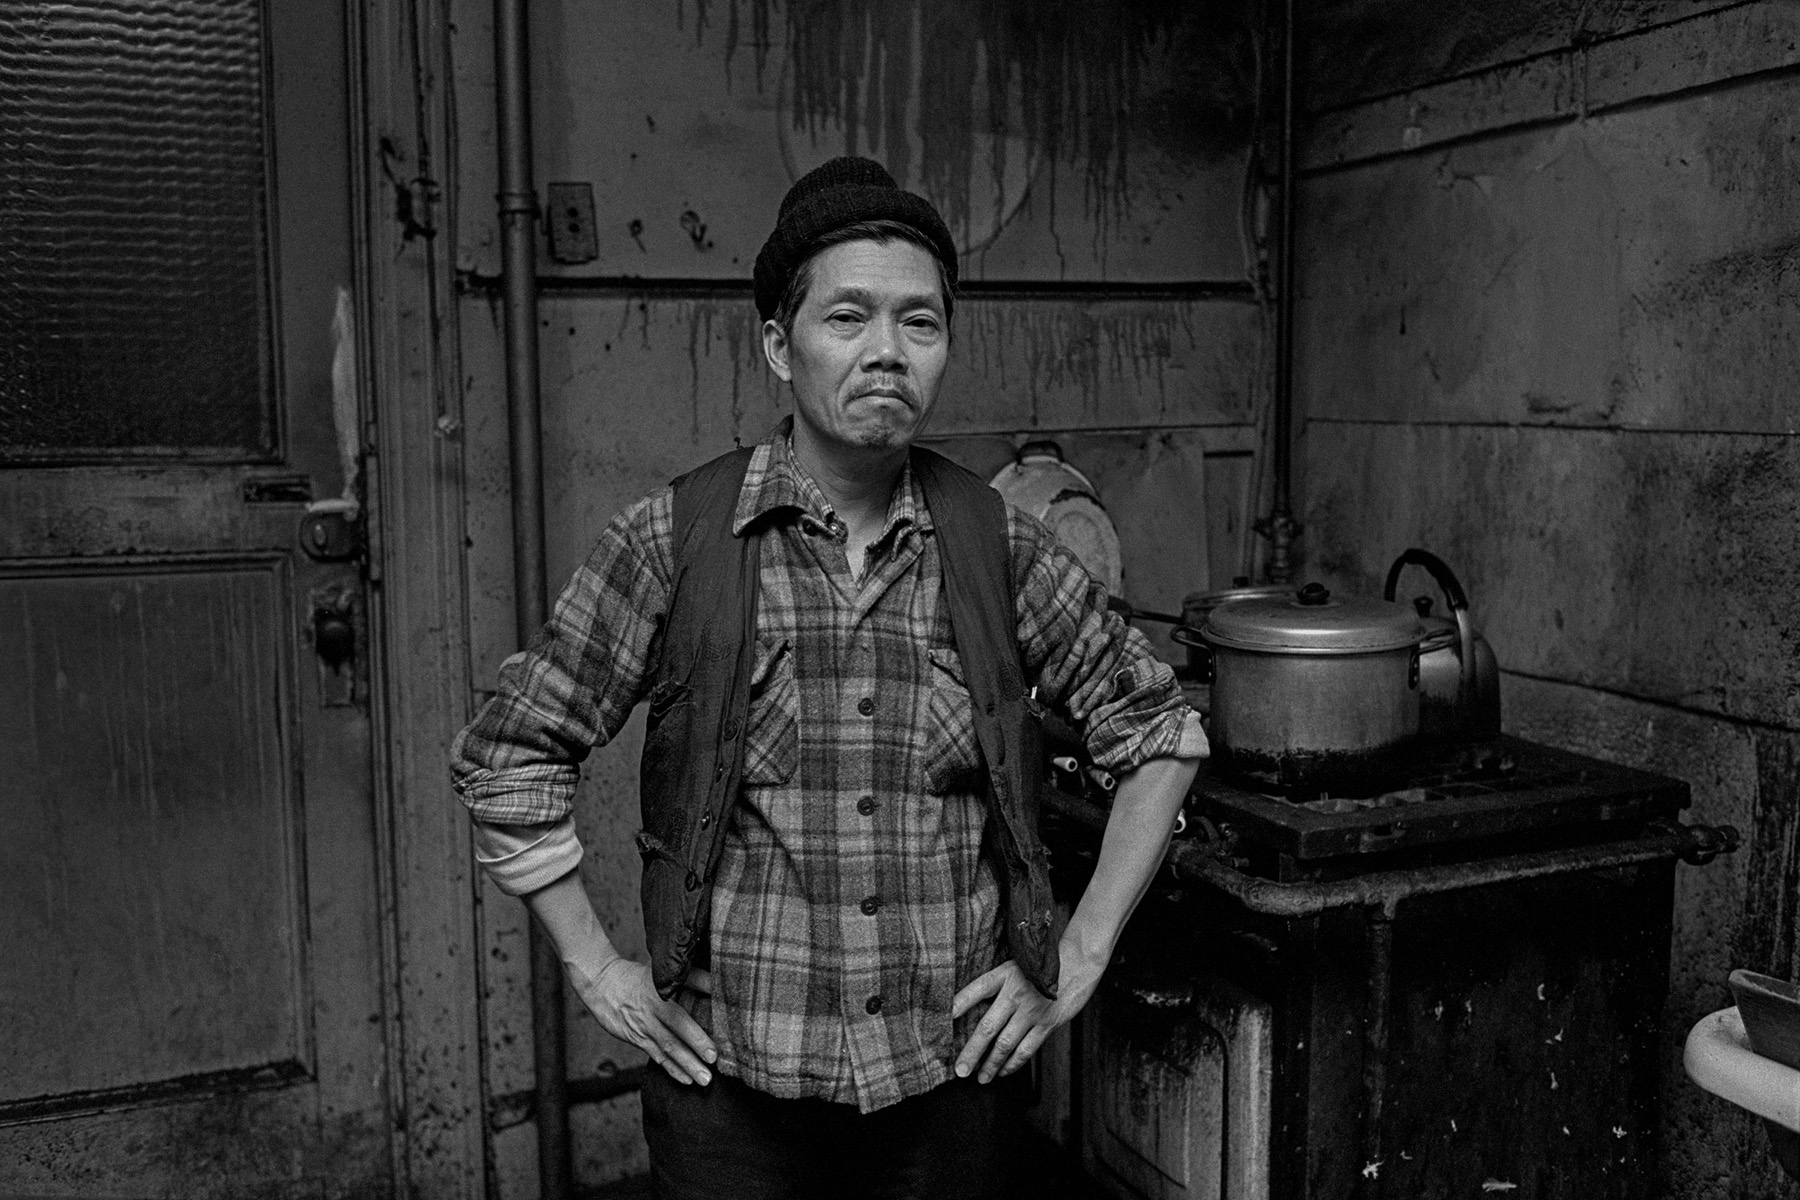 Portrait of a man in a Bachelor Apartment on Bayard St., New York Chinatown, 1982